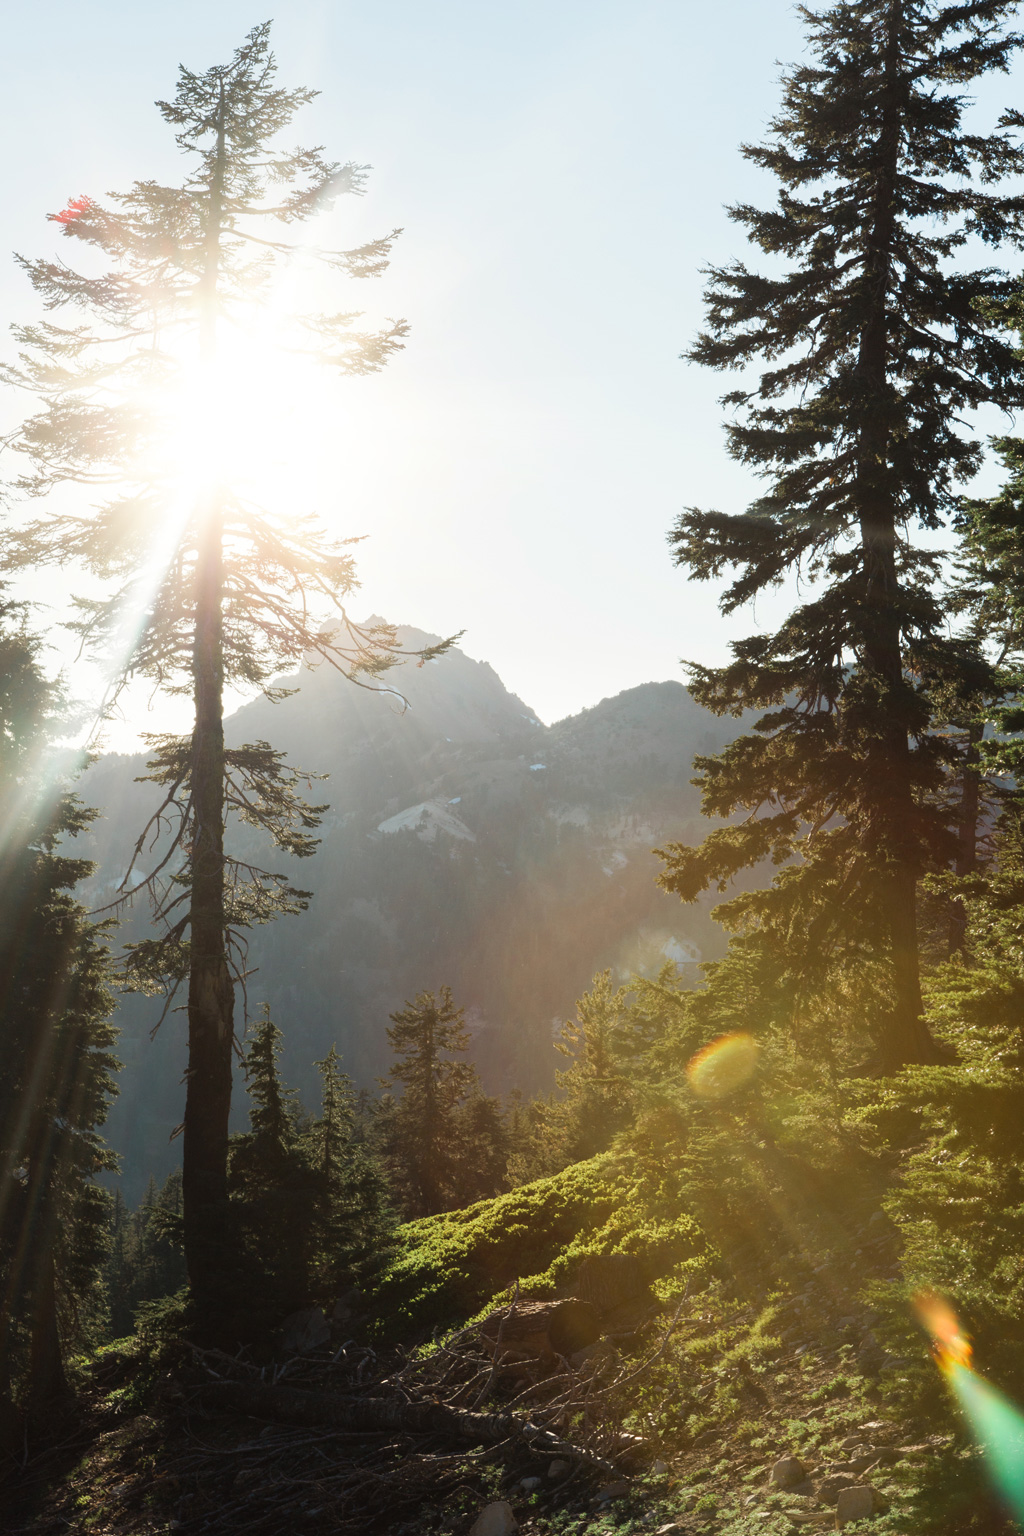 CindyGiovagnoli_Redwoods_CraterLake_MountRainier_PNW_National_Park_trees_camp_road_trip-006.jpg